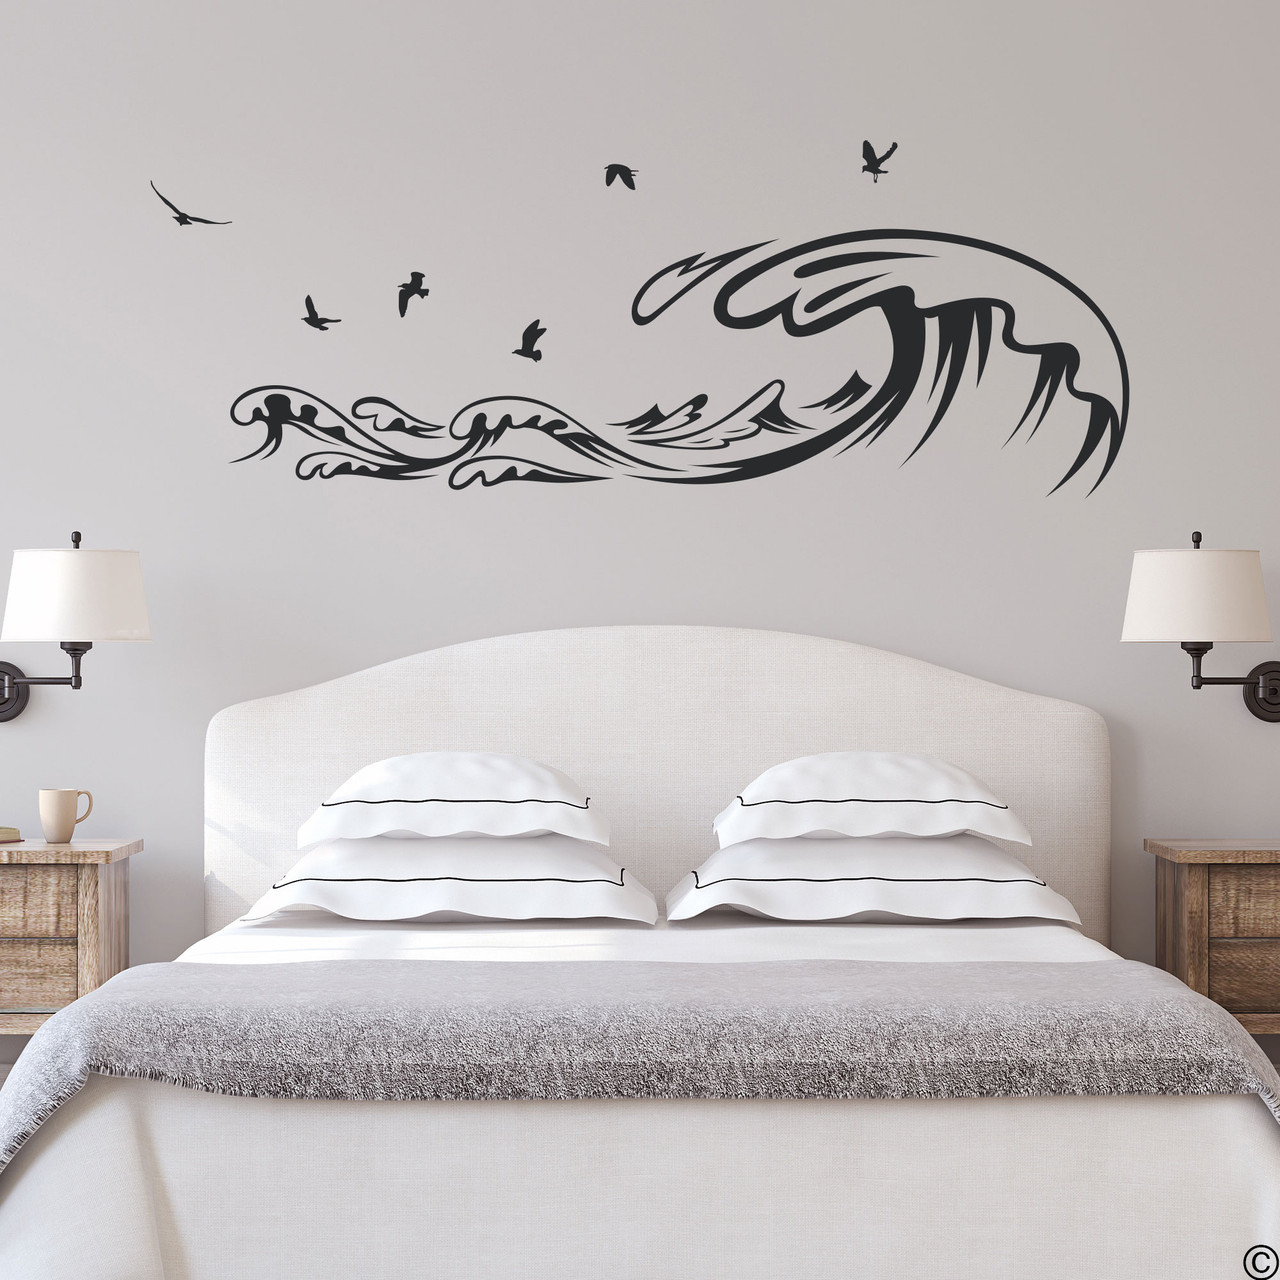 The Waves and Seagulls wall decal shown here in the black vinyl color.